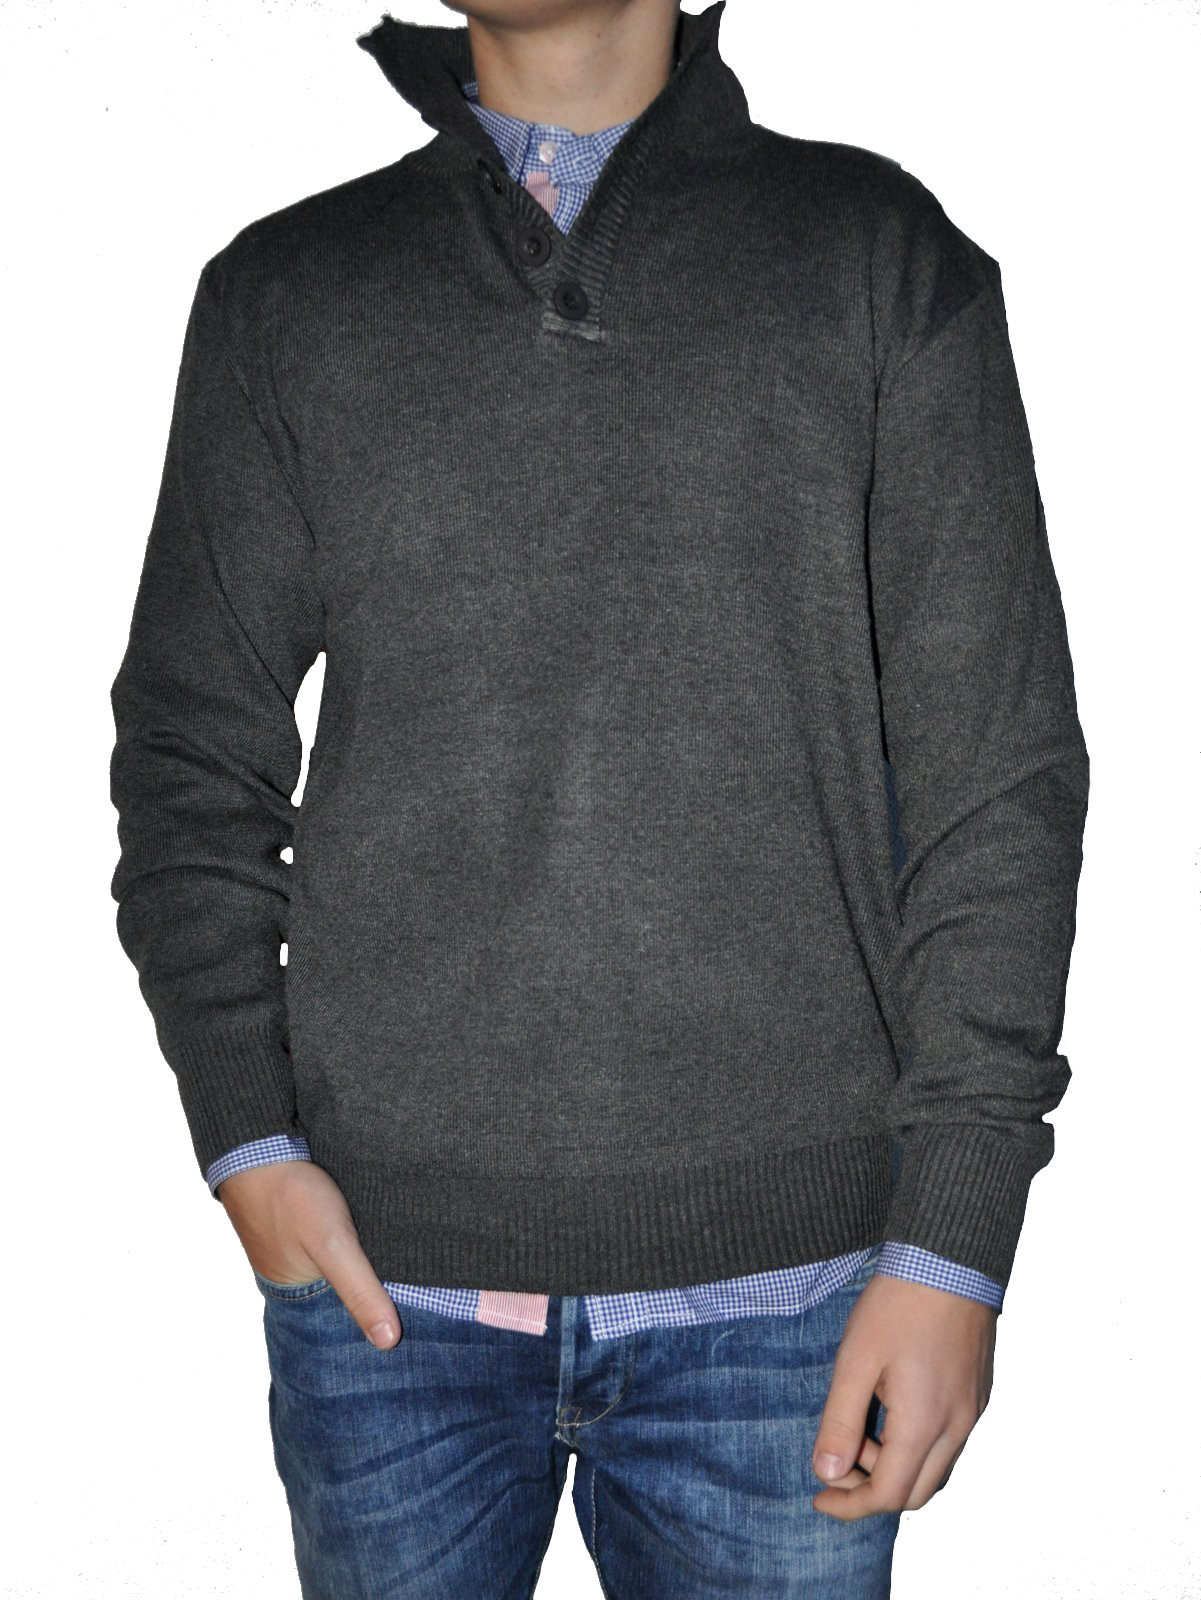 Hoodies & Sweatshirts for Men. Abercrombie & Fitch hoodies and sweatshirts are made to be the softest, most comfortable you'll ever wear. Crafted with high-quality materials, each style is designed with the utmost attention to detail for a truly heritage look that will stand the test of time.